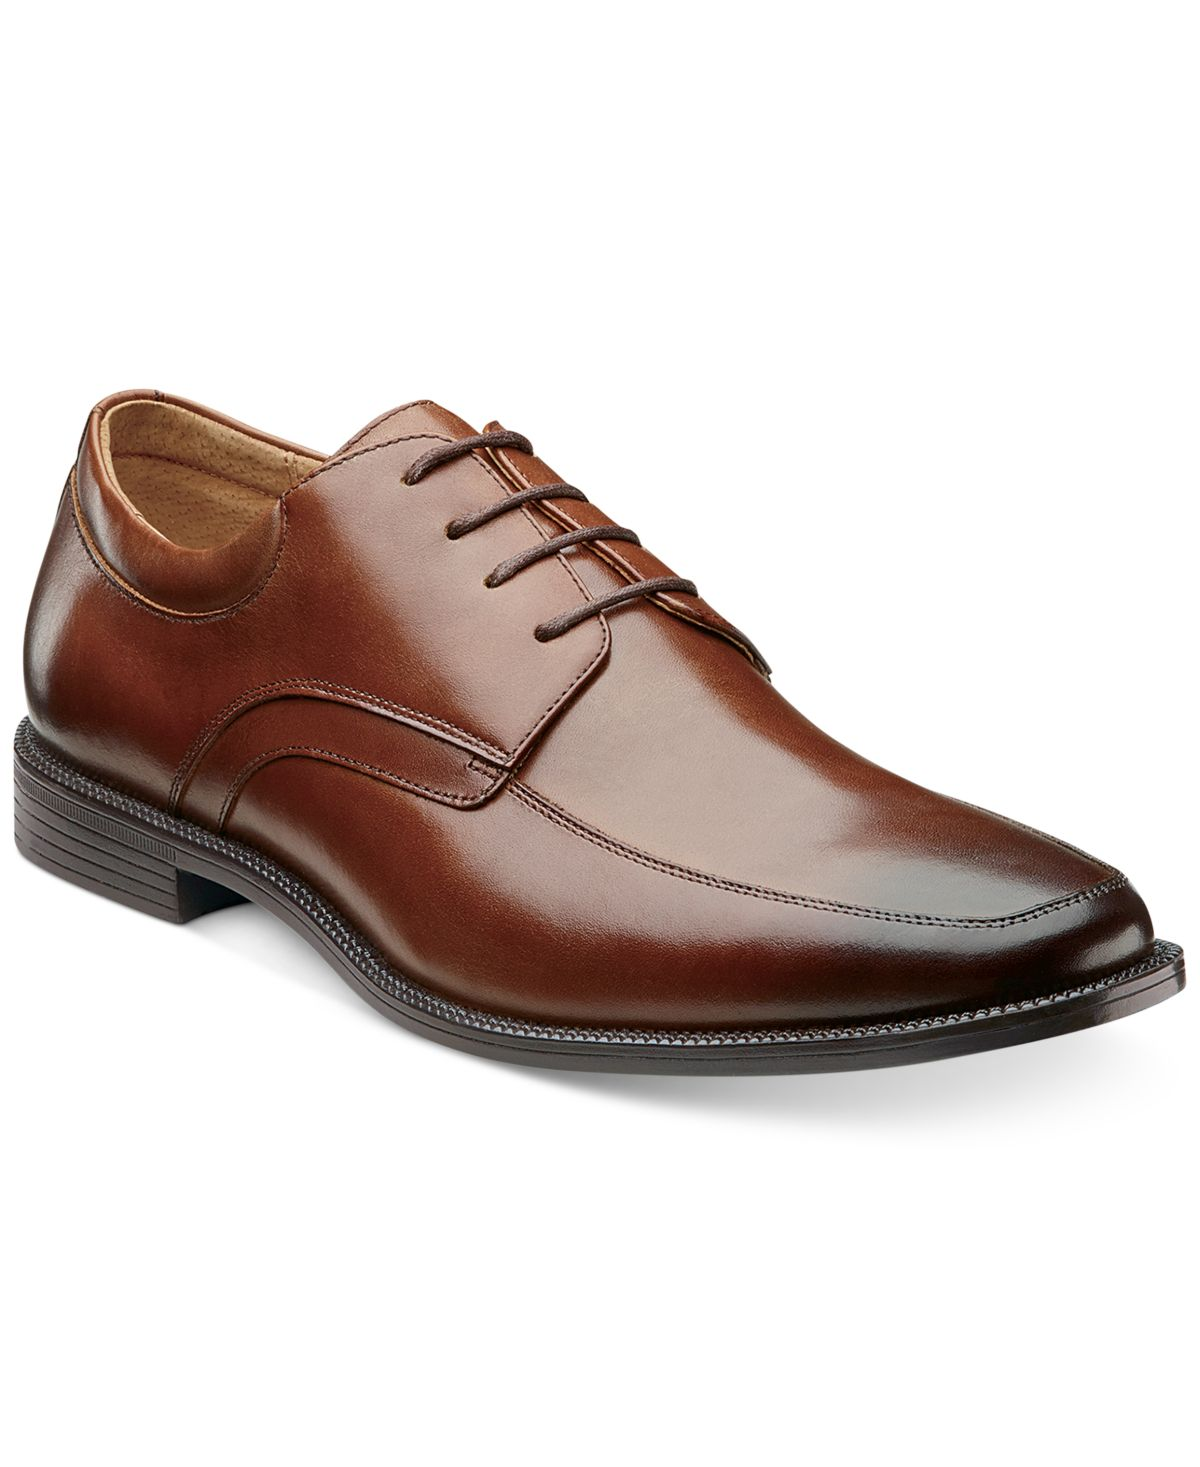 Florsheim Men's Forum Moc Toe Oxford by